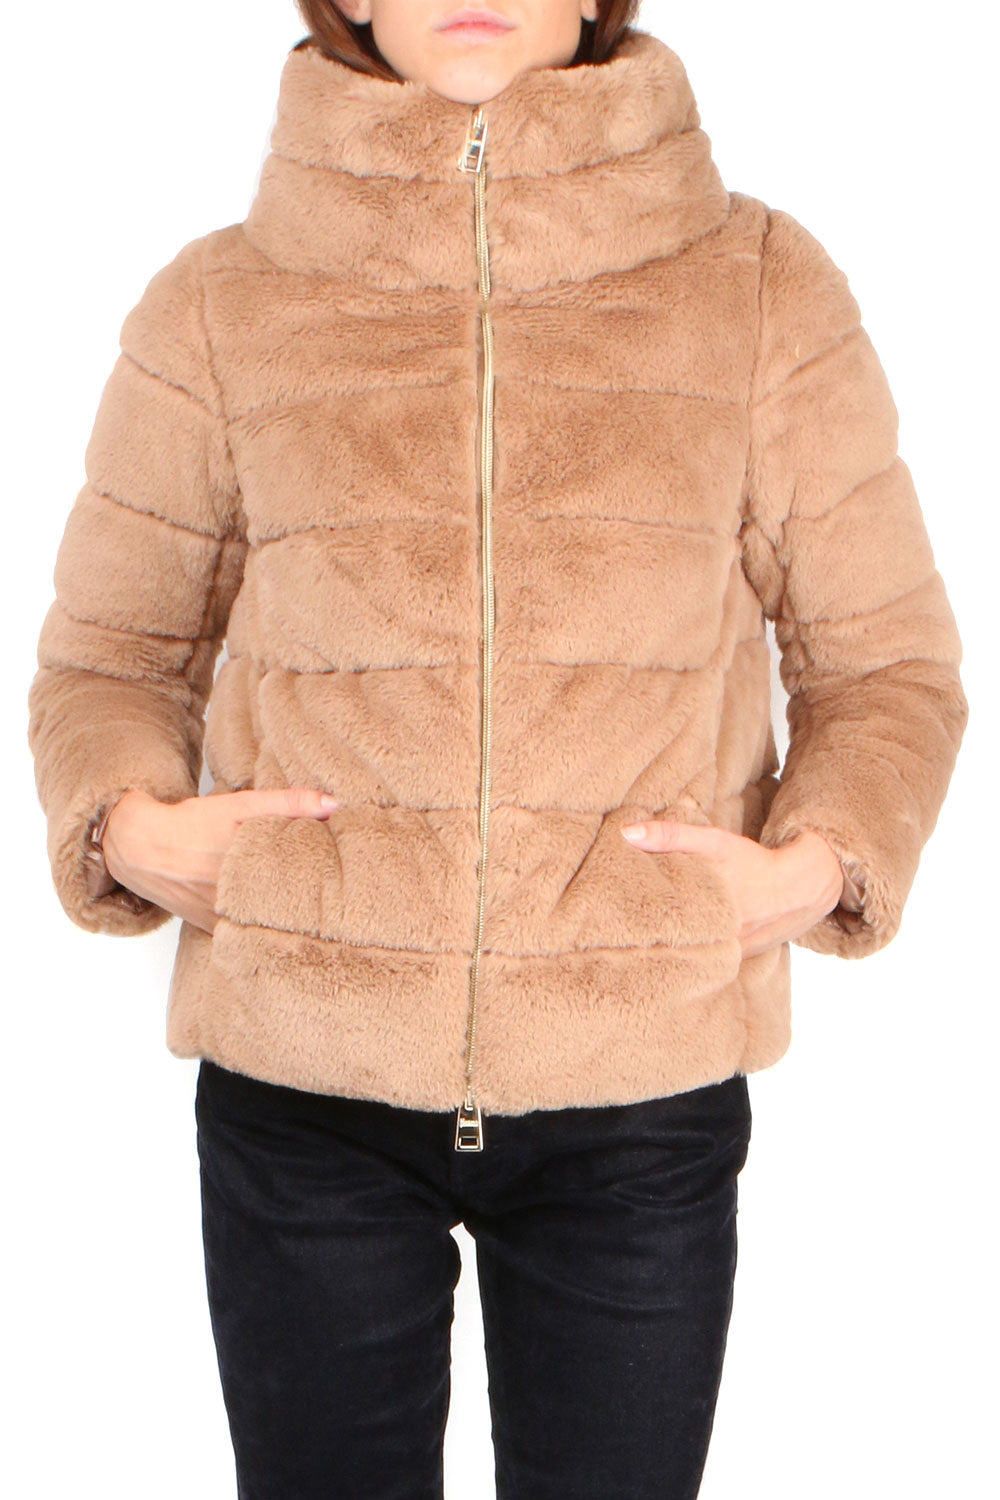 Eco Channeled Jacket